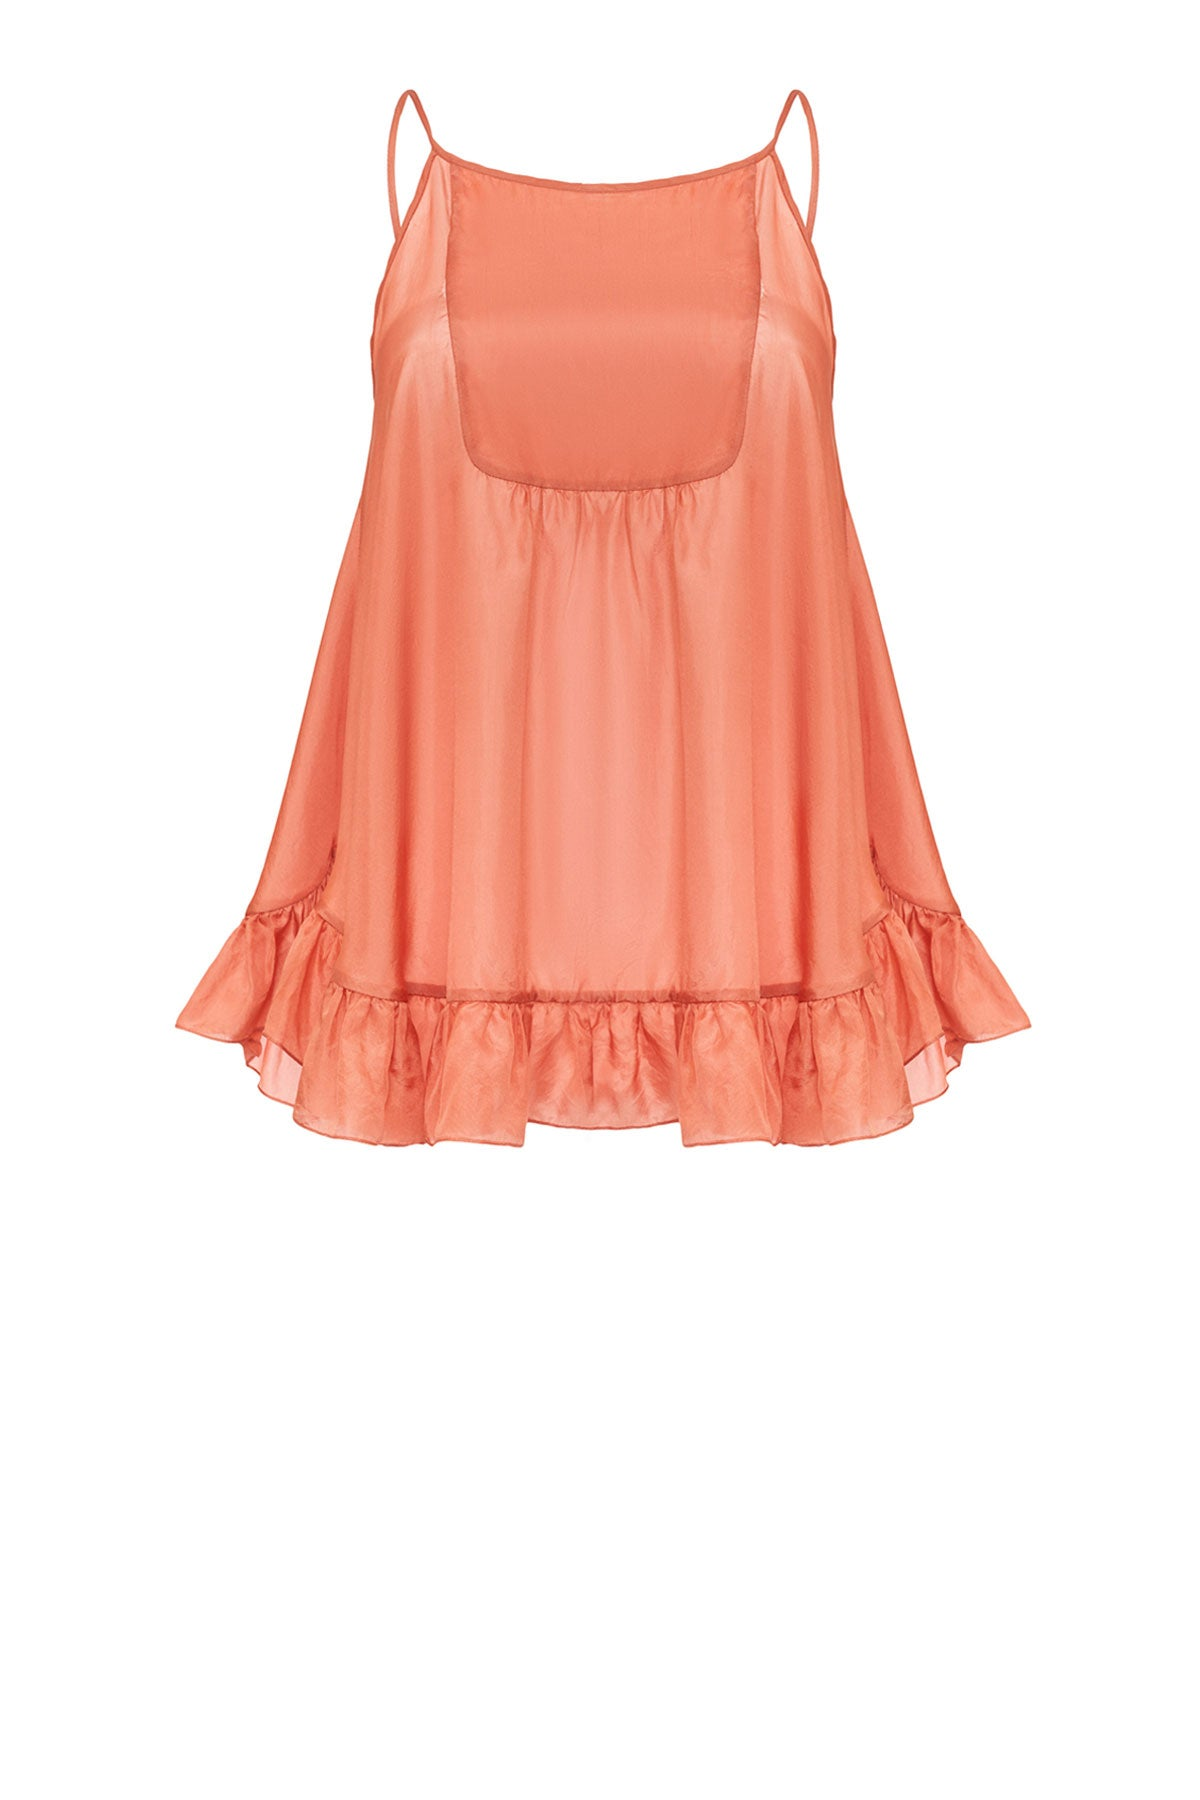 Kyra Top Blush